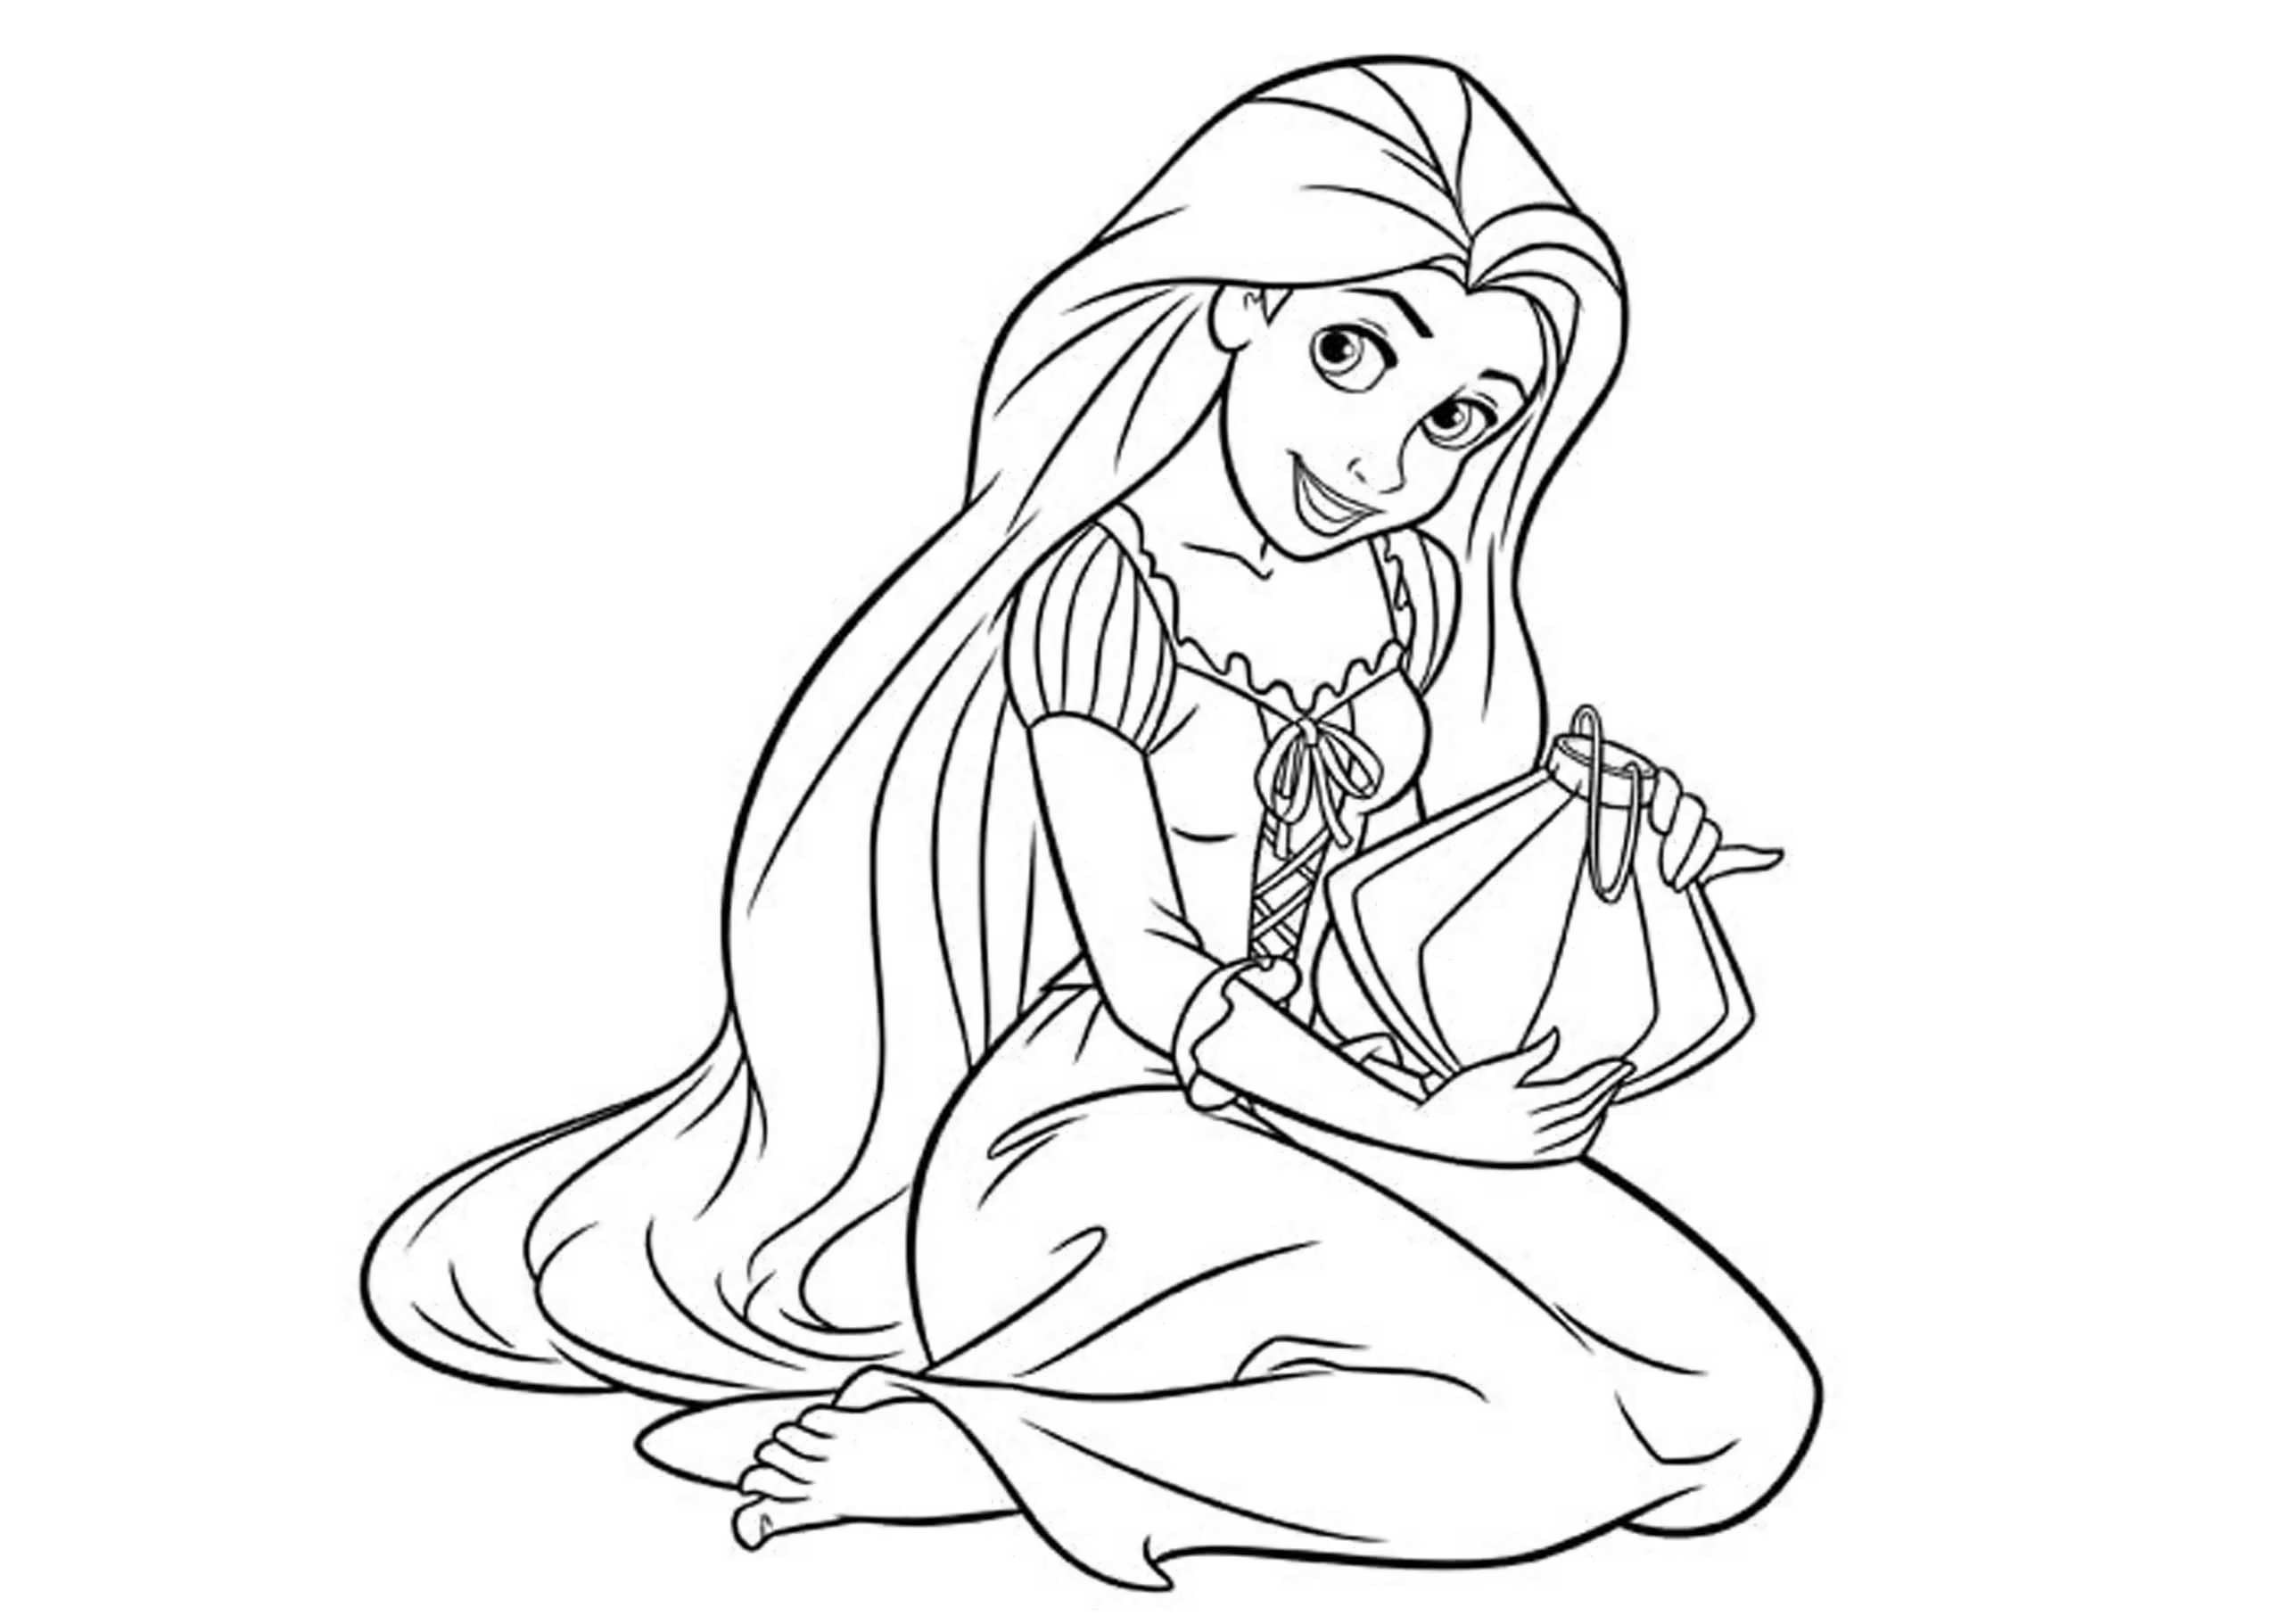 Disney Princess Coloring Pages Pdf Disney Princess Coloring Pages Pdf Awesome Disney Coloring Book Pdf Br Disney Princess Coloring P I 2020 Malarbocker Malarbok Mala